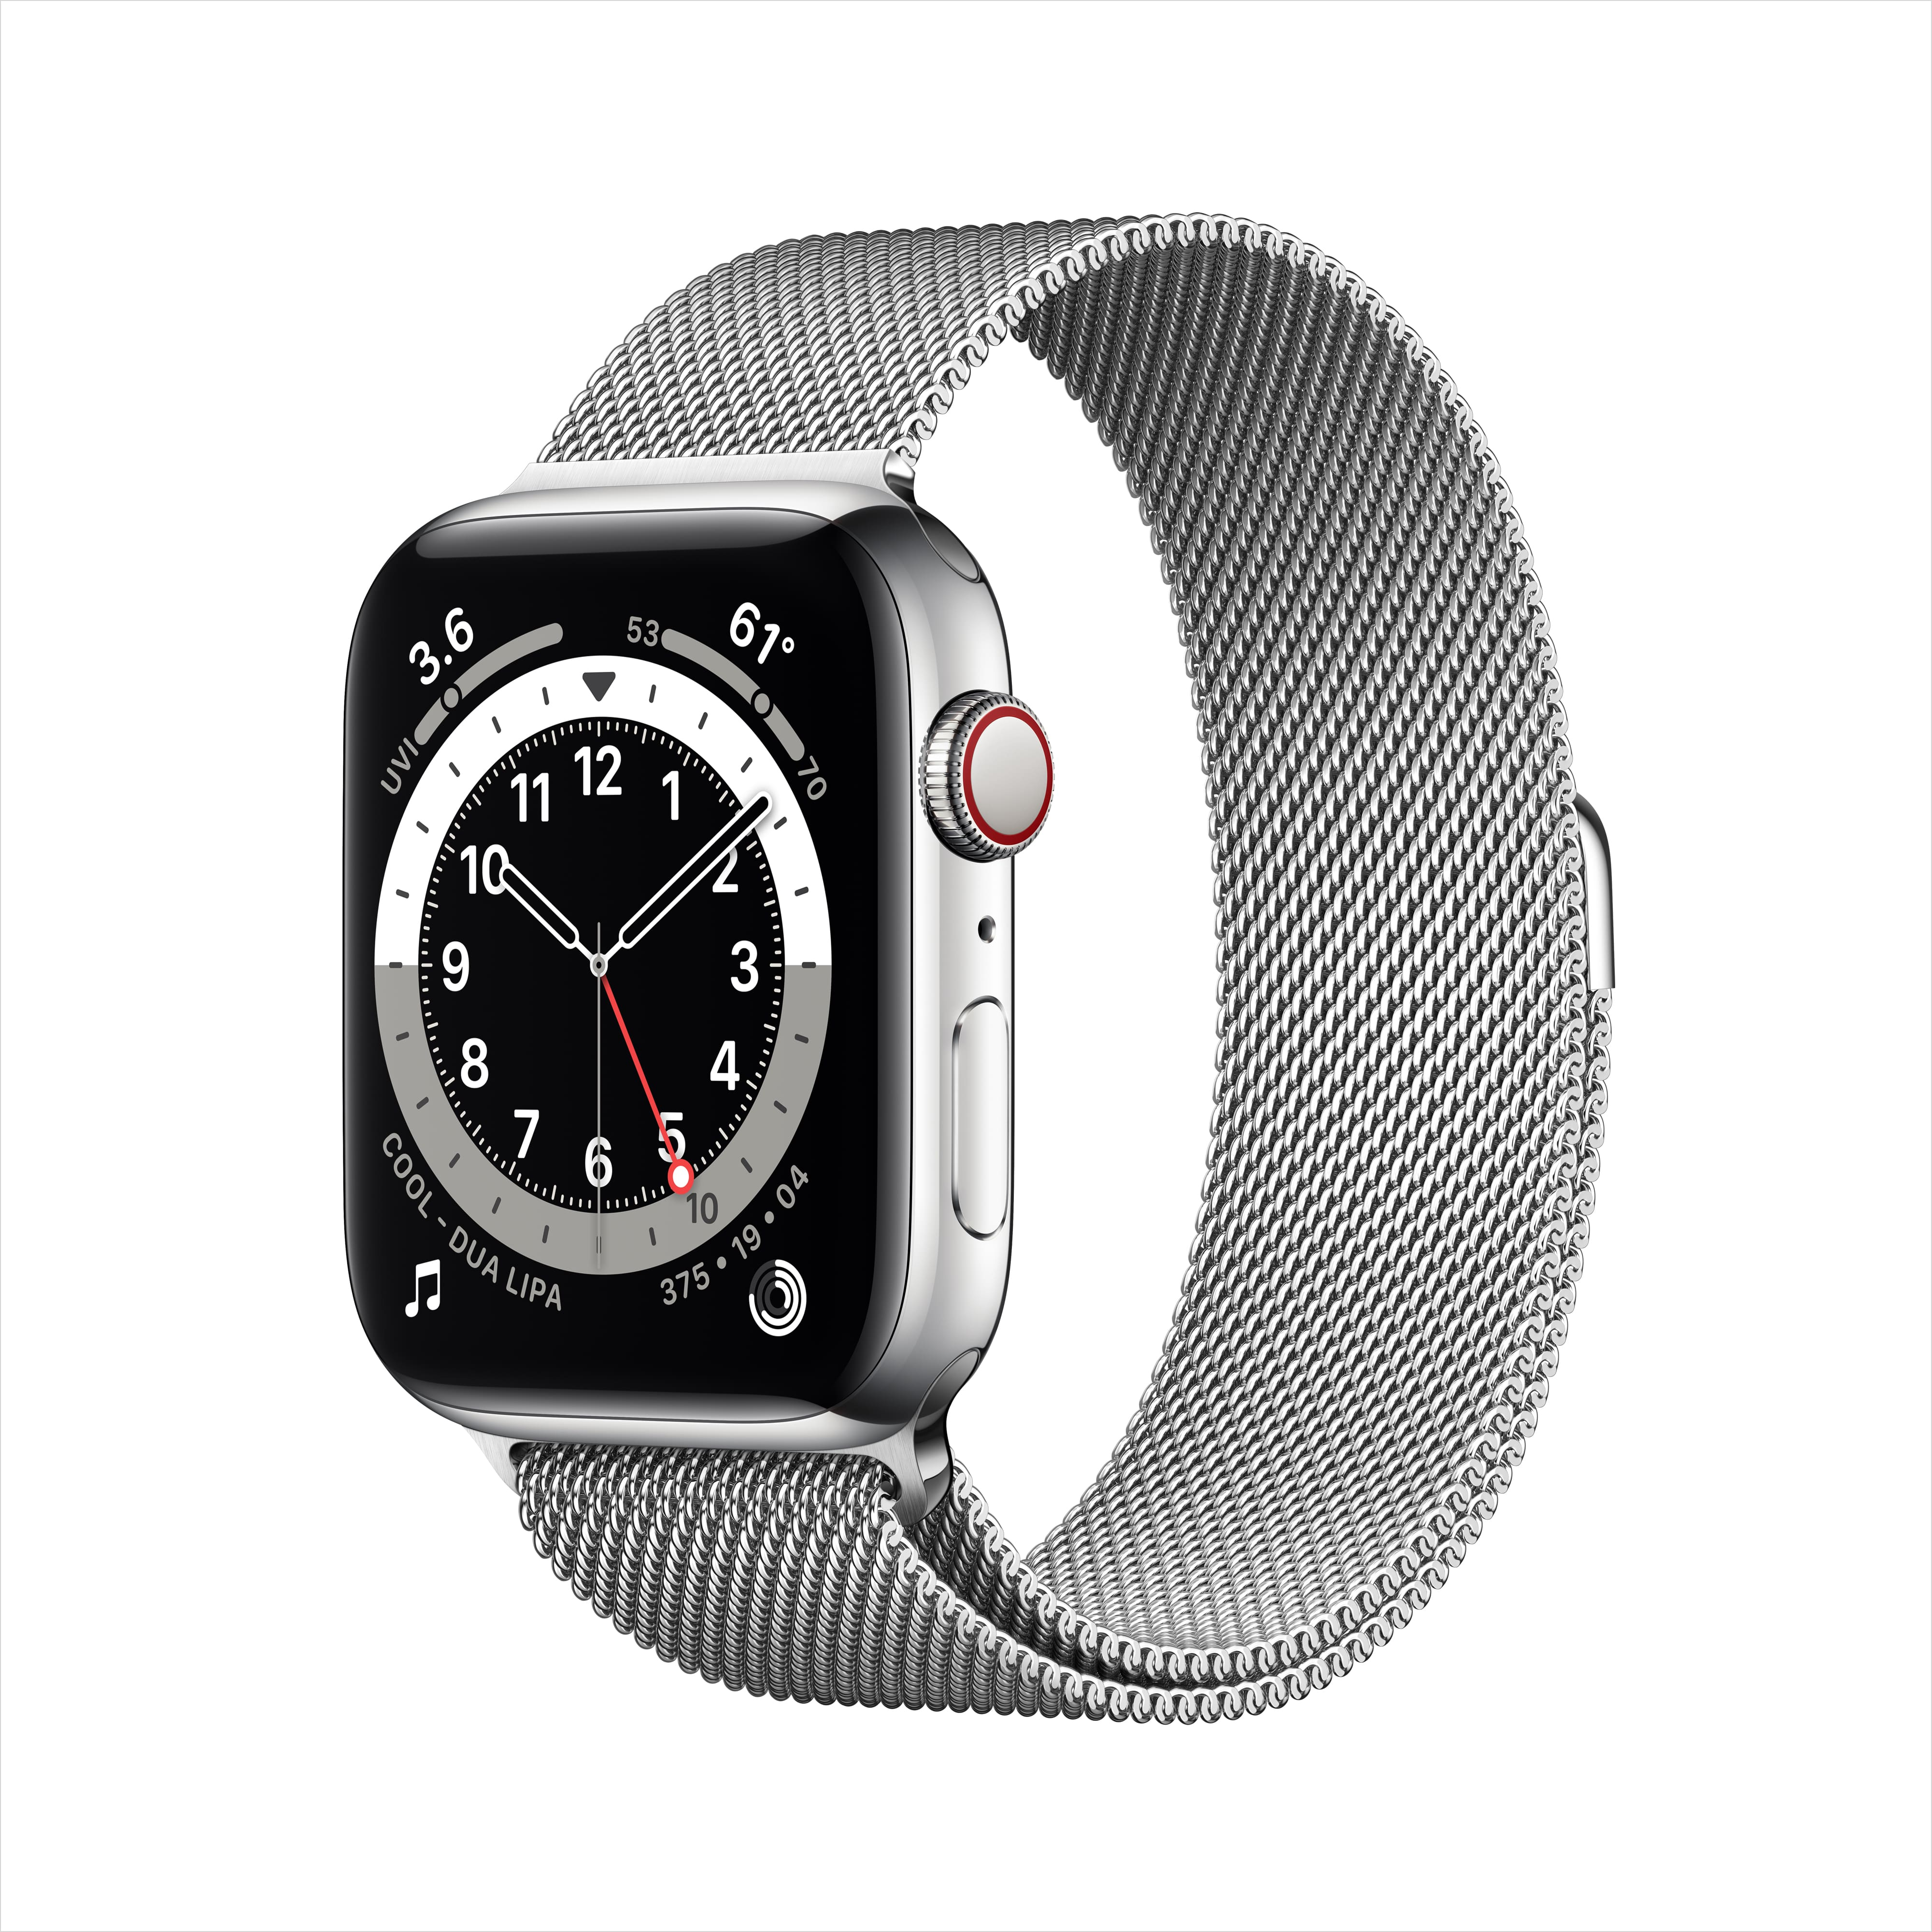 Apple Watch Series 6 GPS + Cellular, 44mm Silver Stainless Steel Case with Silver Milanese Loop $553.12